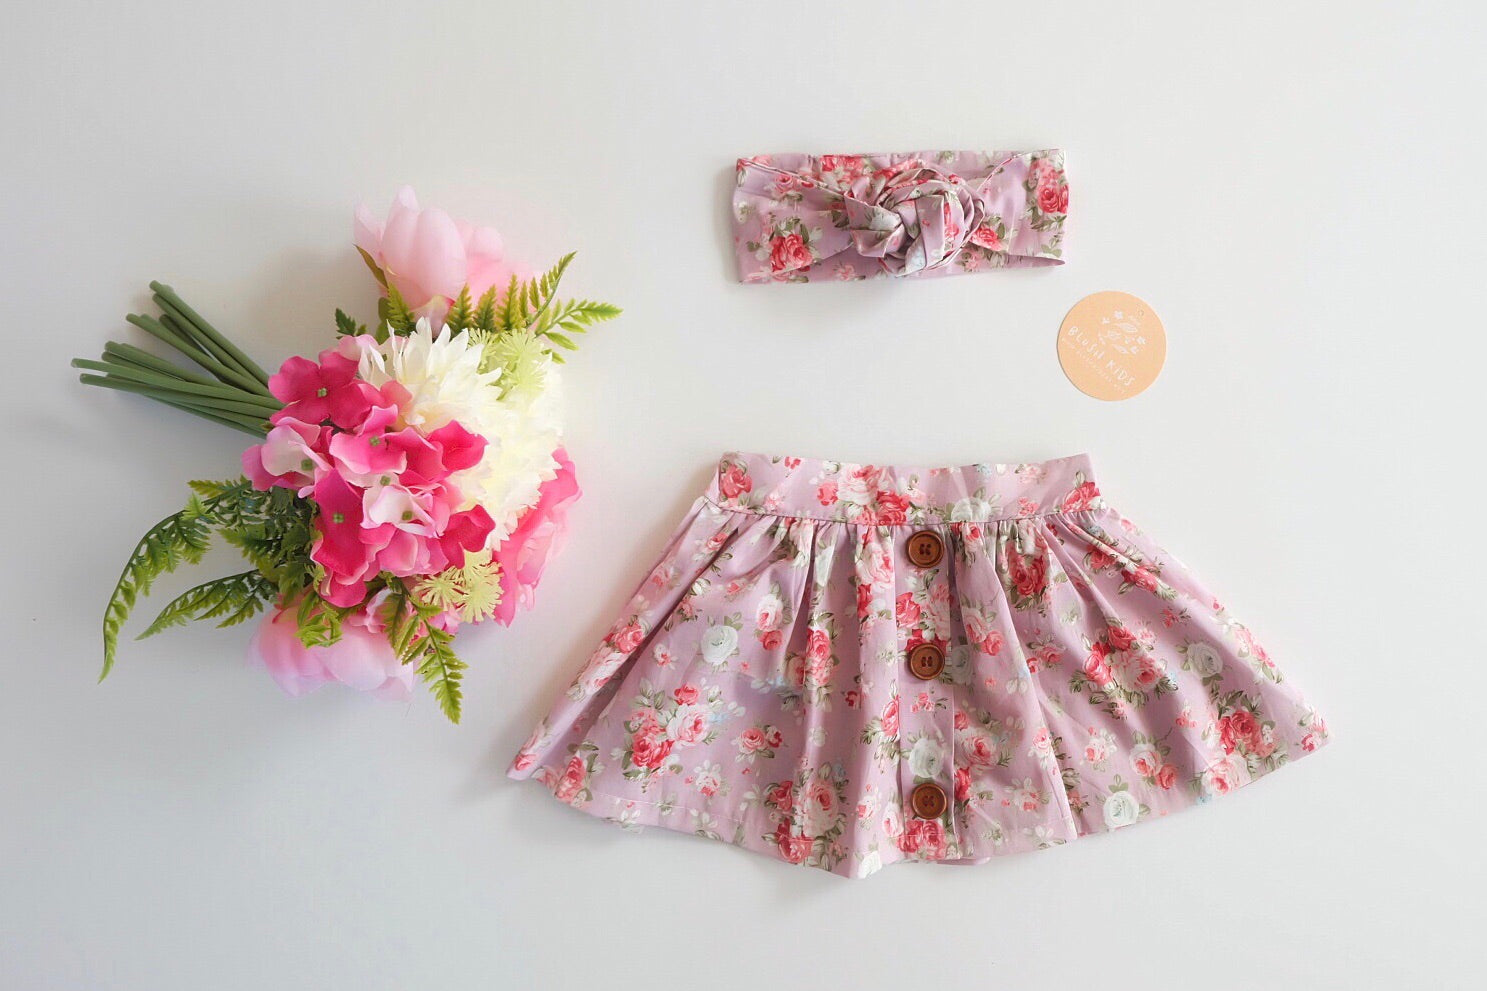 LIMITED EDITION Milah Flair Skirt